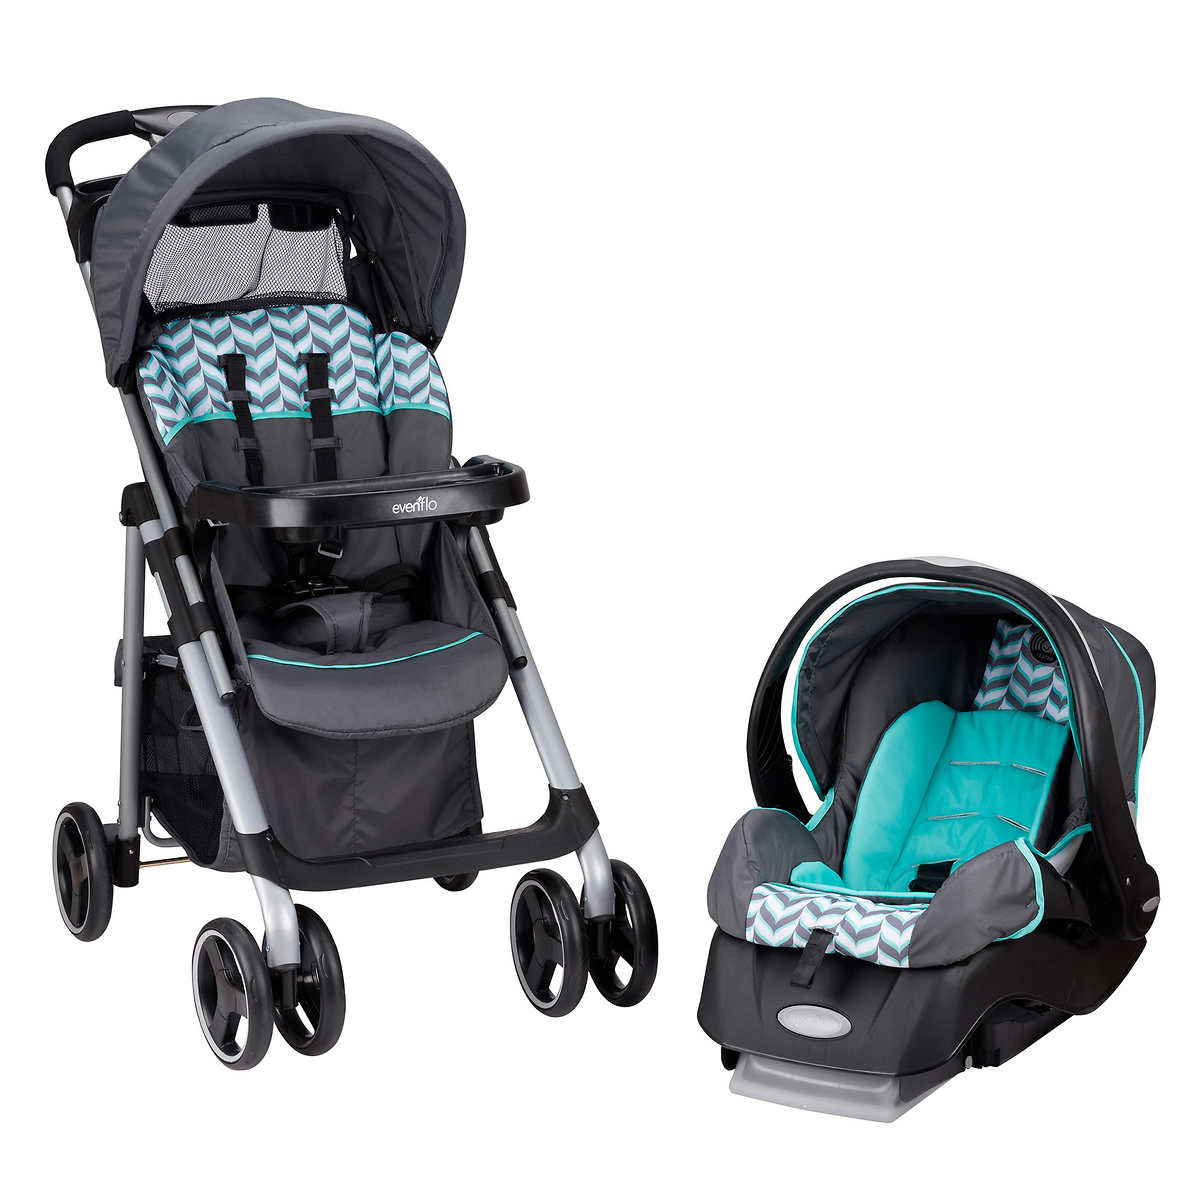 evenflo strollers  carriers  costco - evenflo vive with embrace travel system  speariment spree